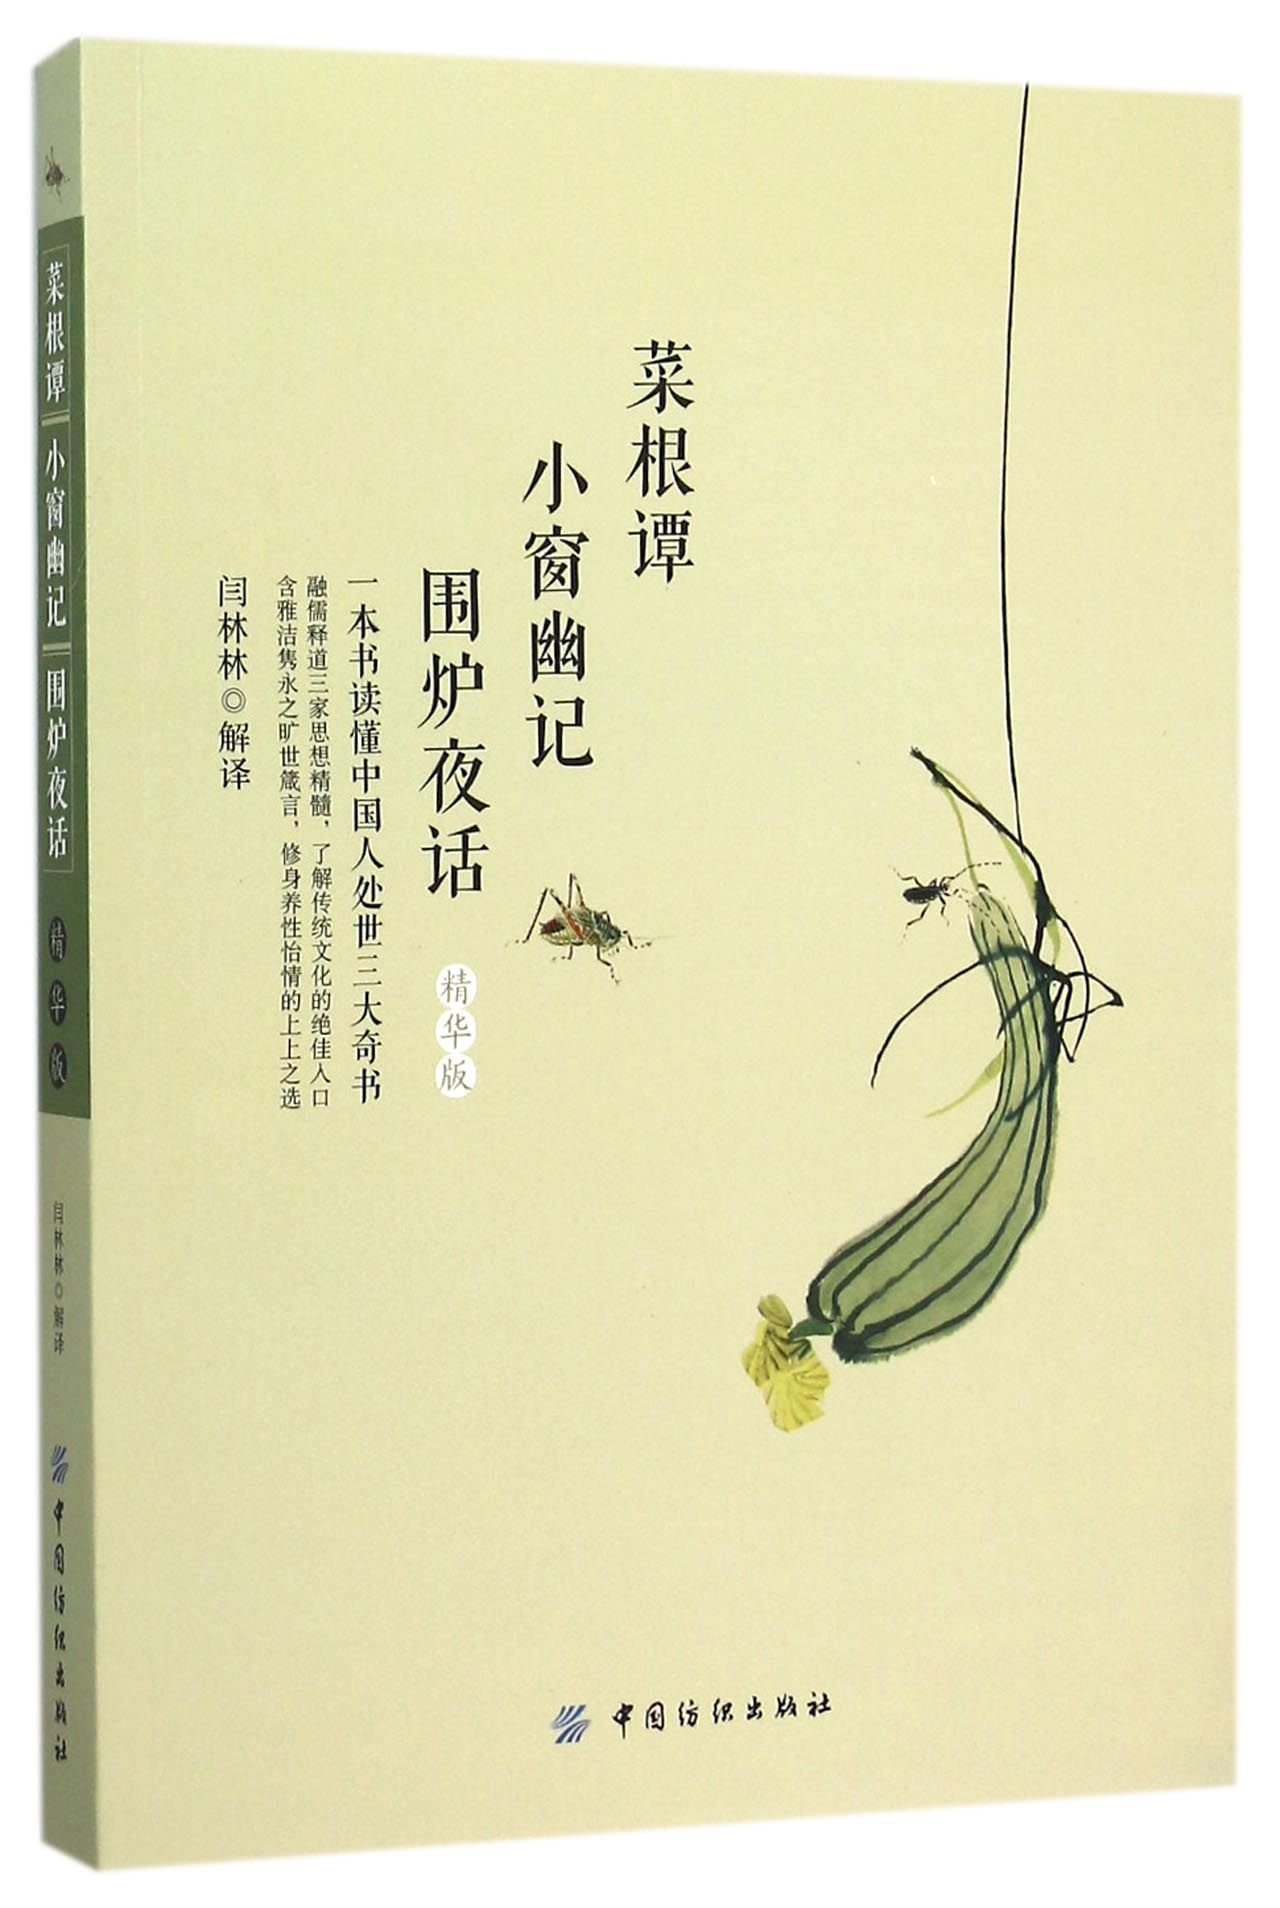 Download Roots of Wisdom & Speculations in Solitude at Tiny Window & Fireside Chat (Chinese Edition) ebook